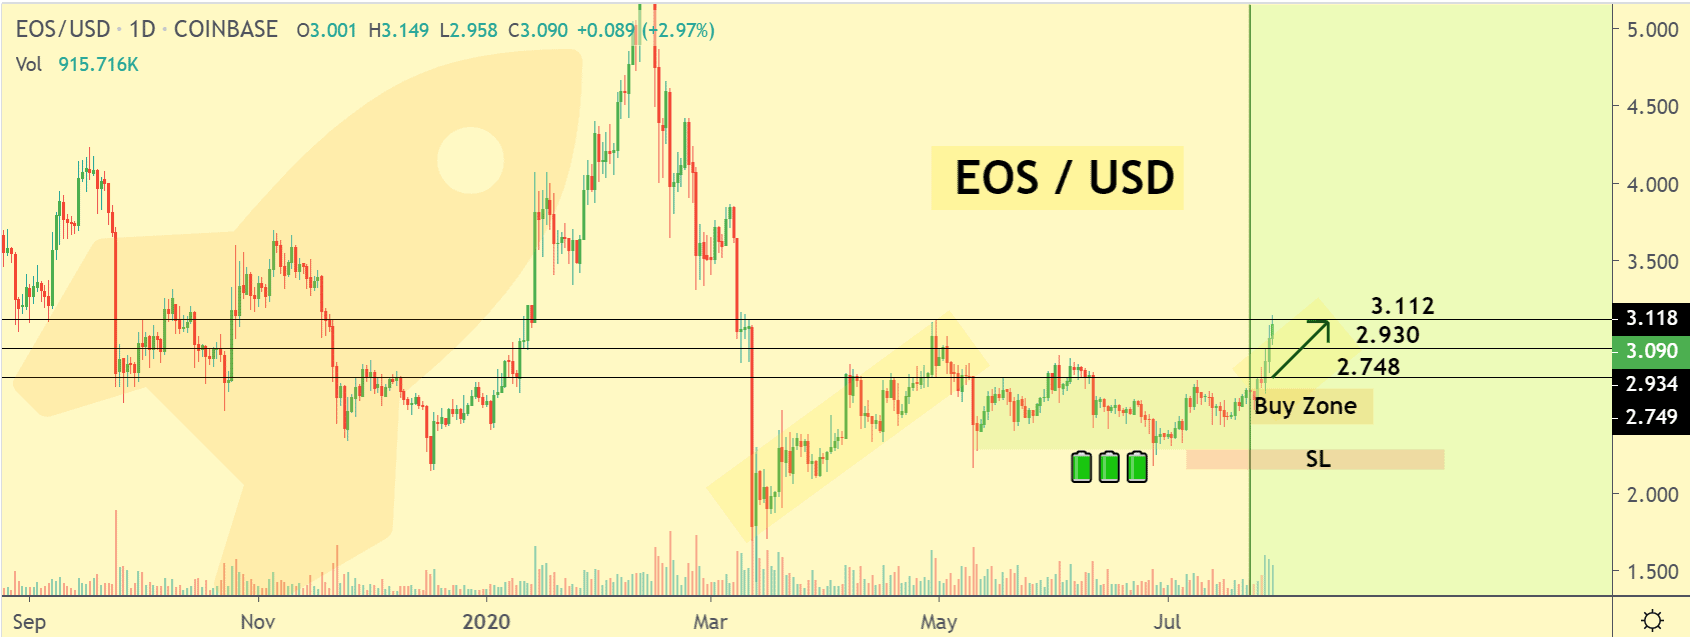 EOS price chart 2 - 30 July